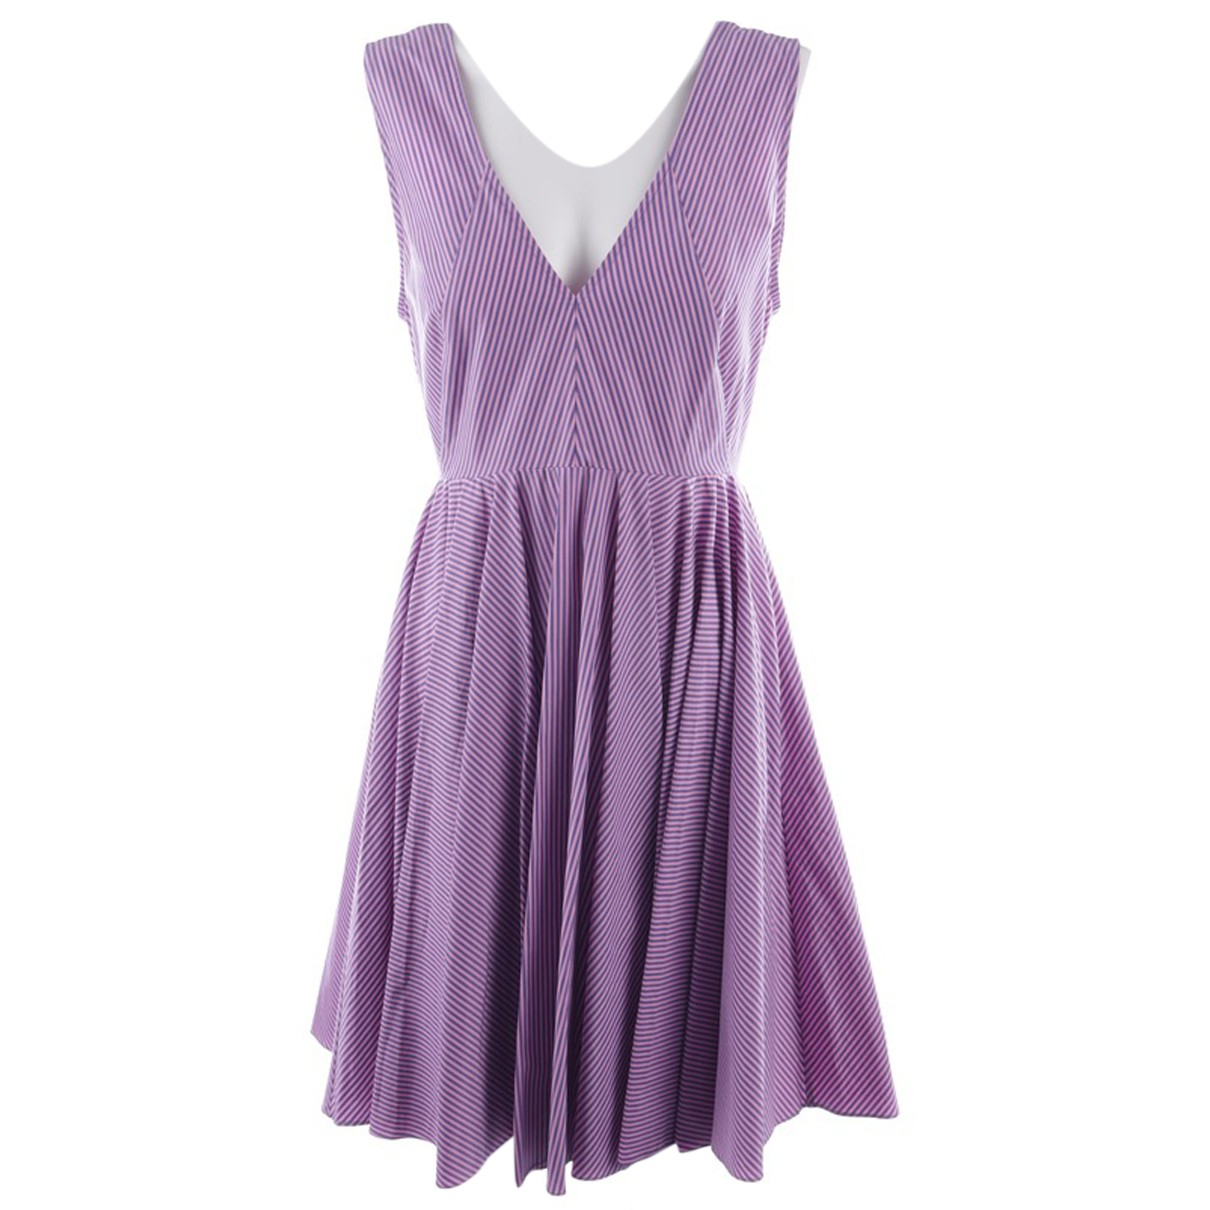 Sandro N Pink Cotton dress for Women 36 IT